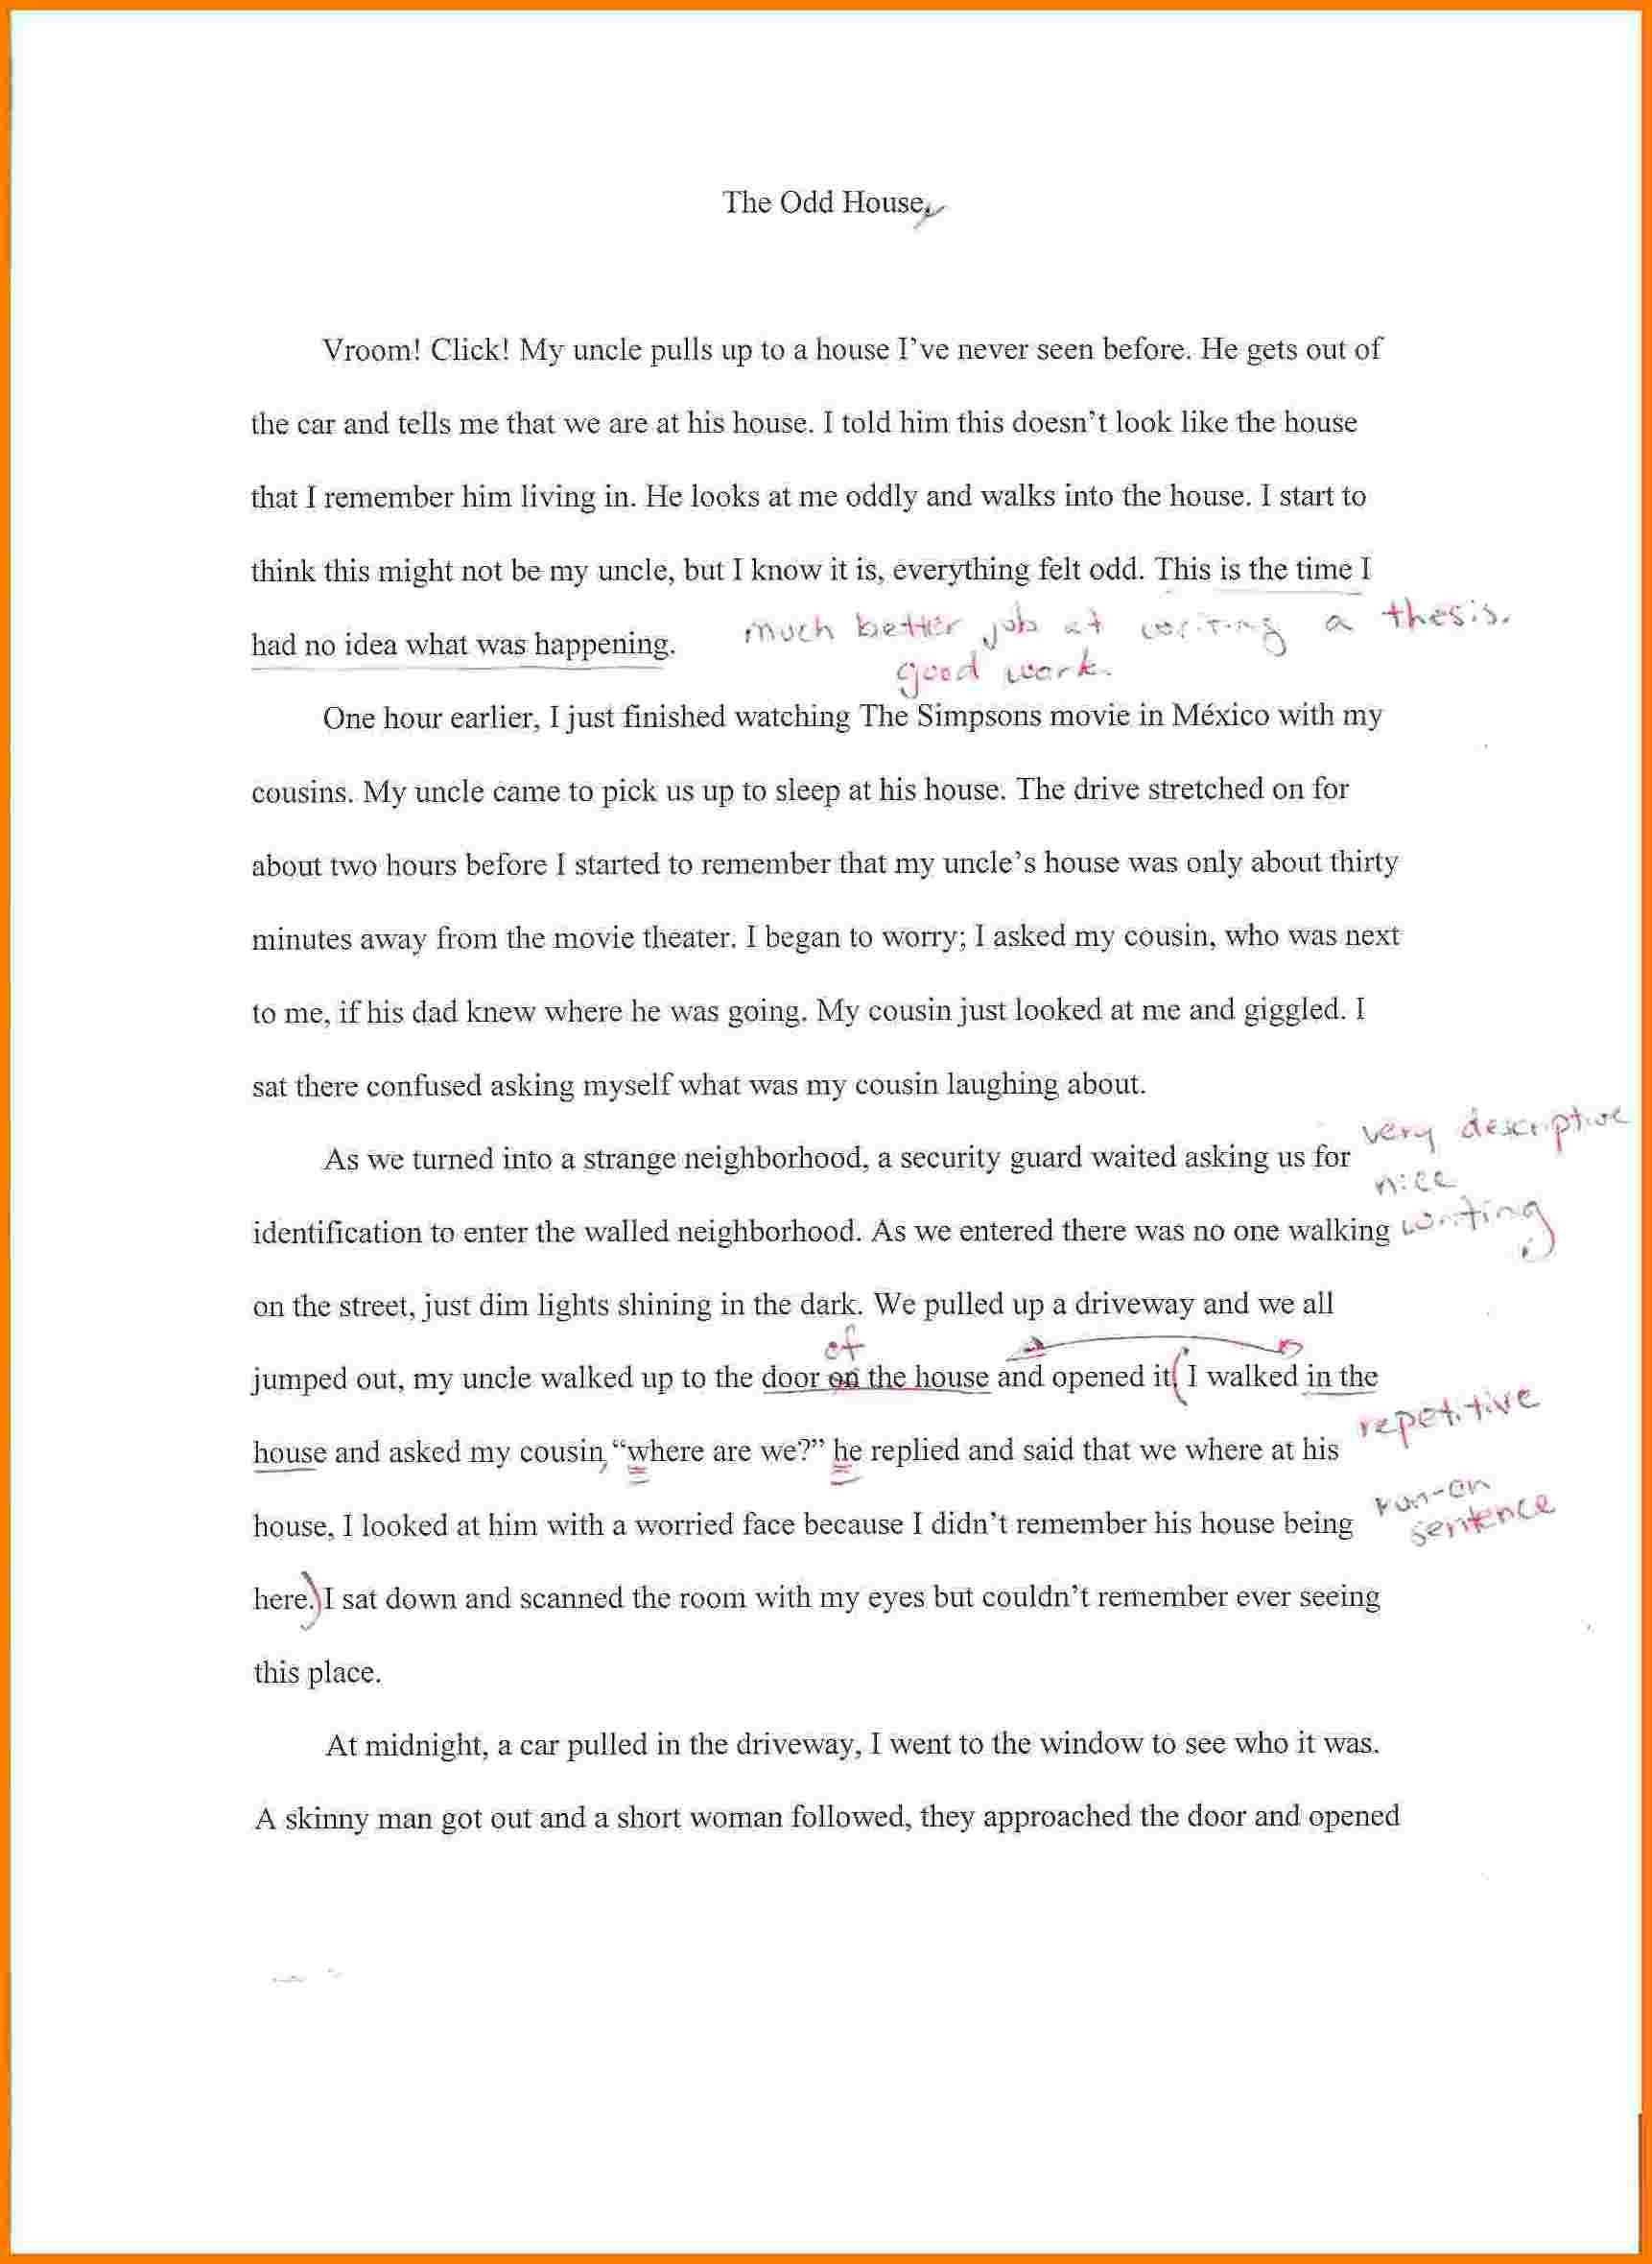 Breast Cancer Essay Family History Essay Examples Background Essay Example Family Family  History Essay Babe Ruth Essay  Family Atticus Finch Essay also Hindi Essay On Mother Teresa Essays About Family Essay About Family Expectations Introduction To  Gender Bias Essay